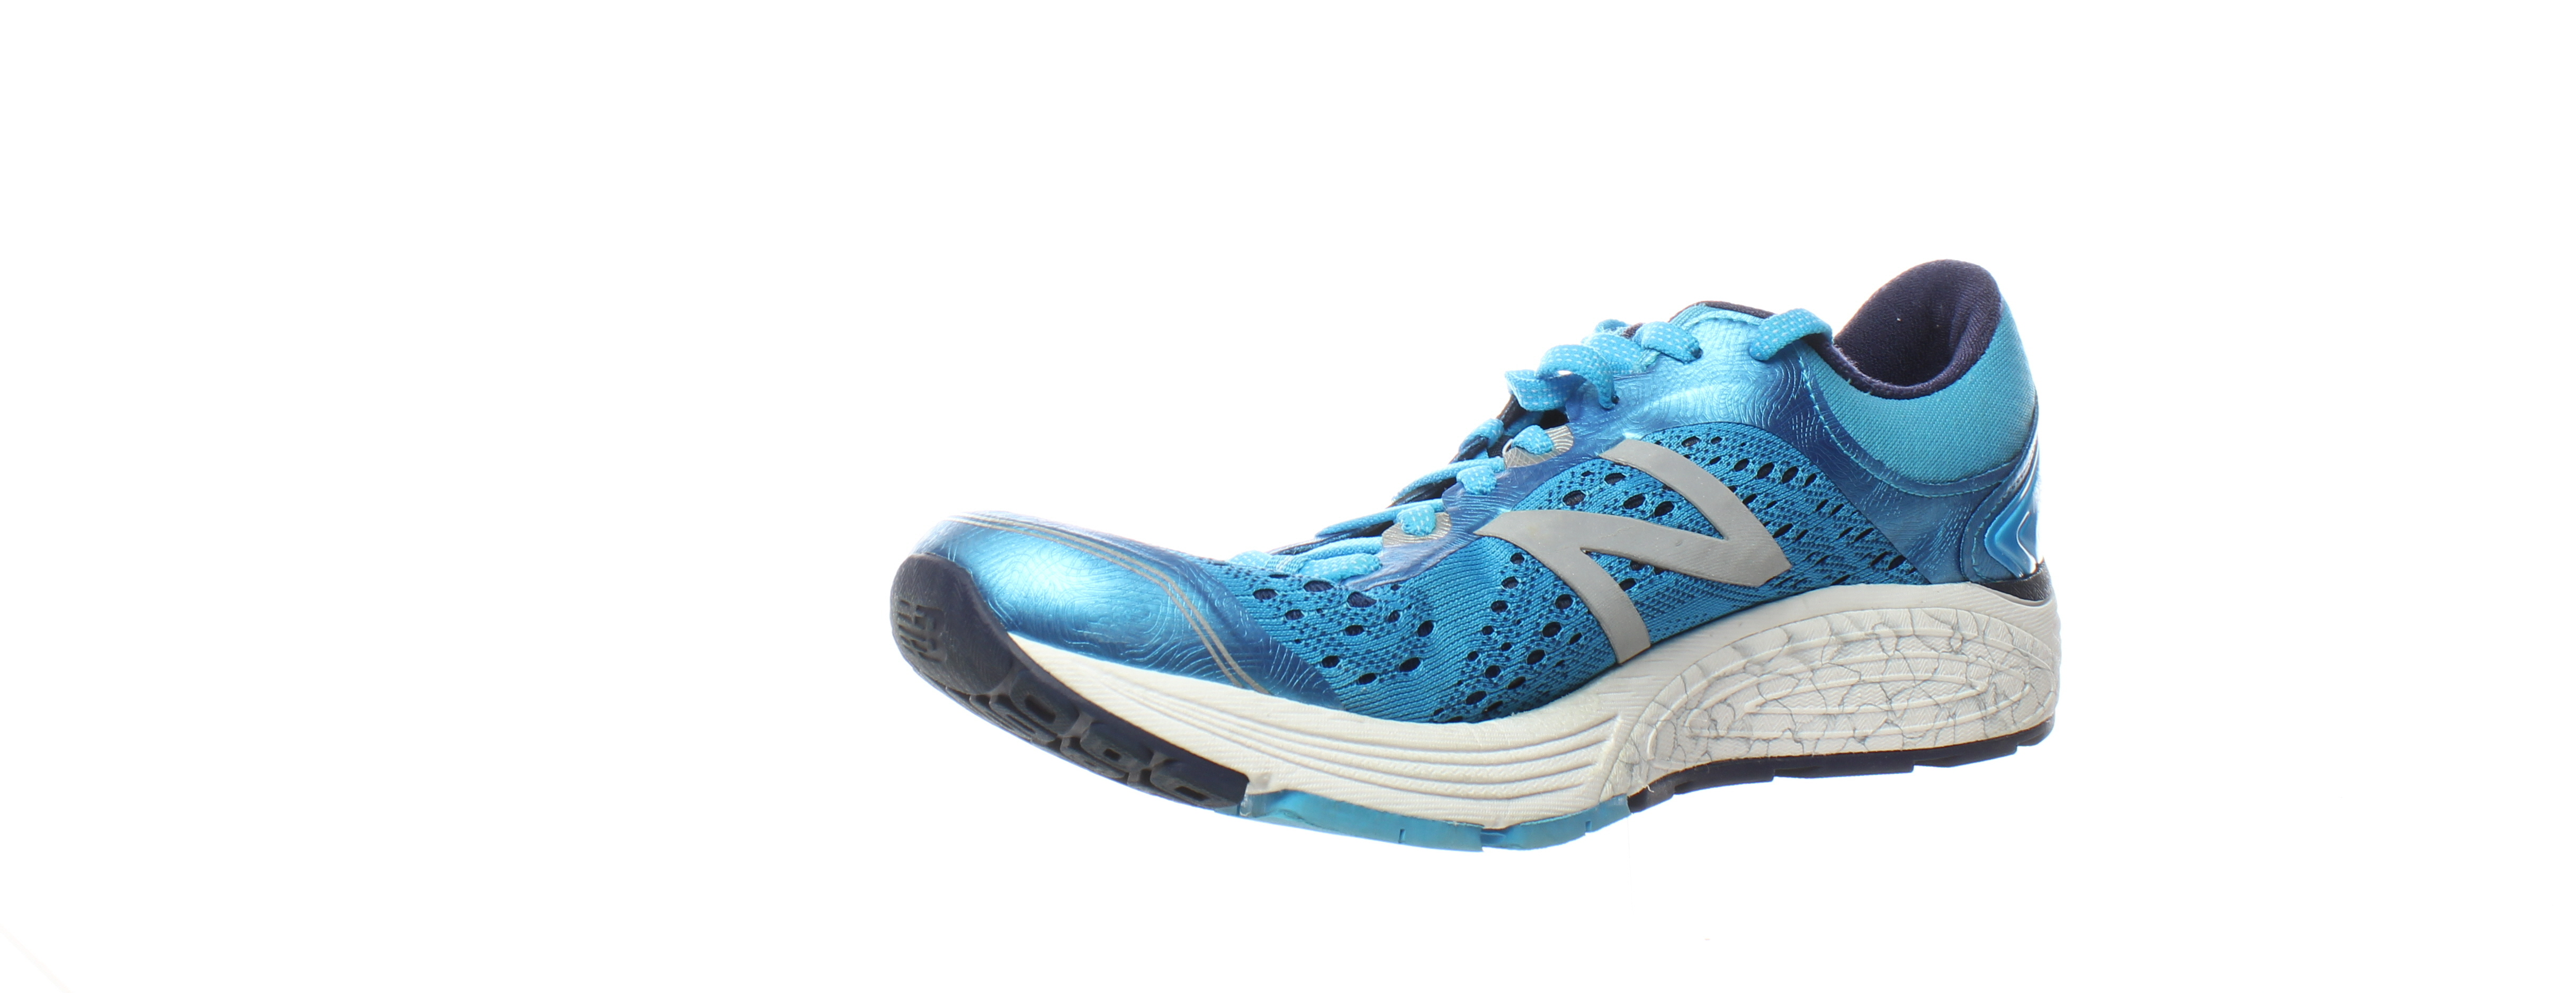 Details about New Balance Womens W1260pp7 Bright Blue Running Shoes Size 10 (524444)